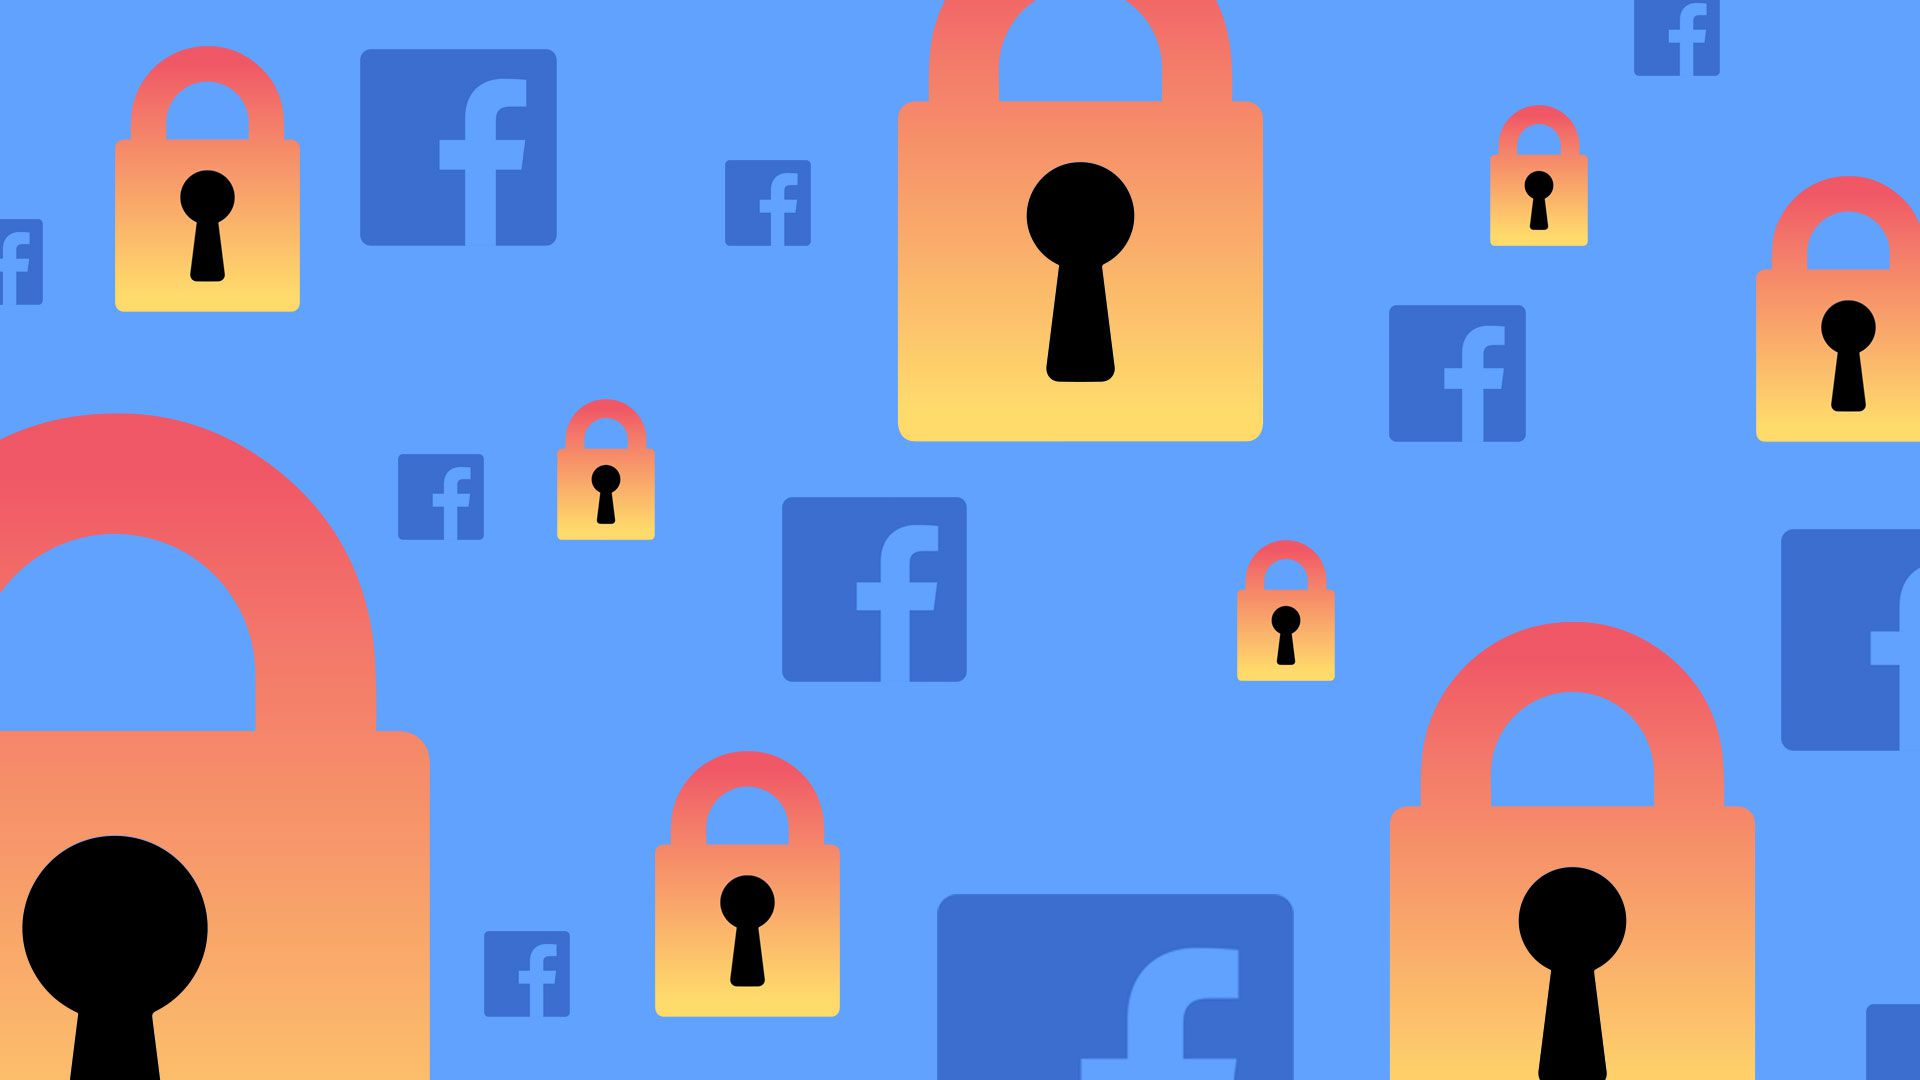 An image of floating padlocks and floating Facebook logos